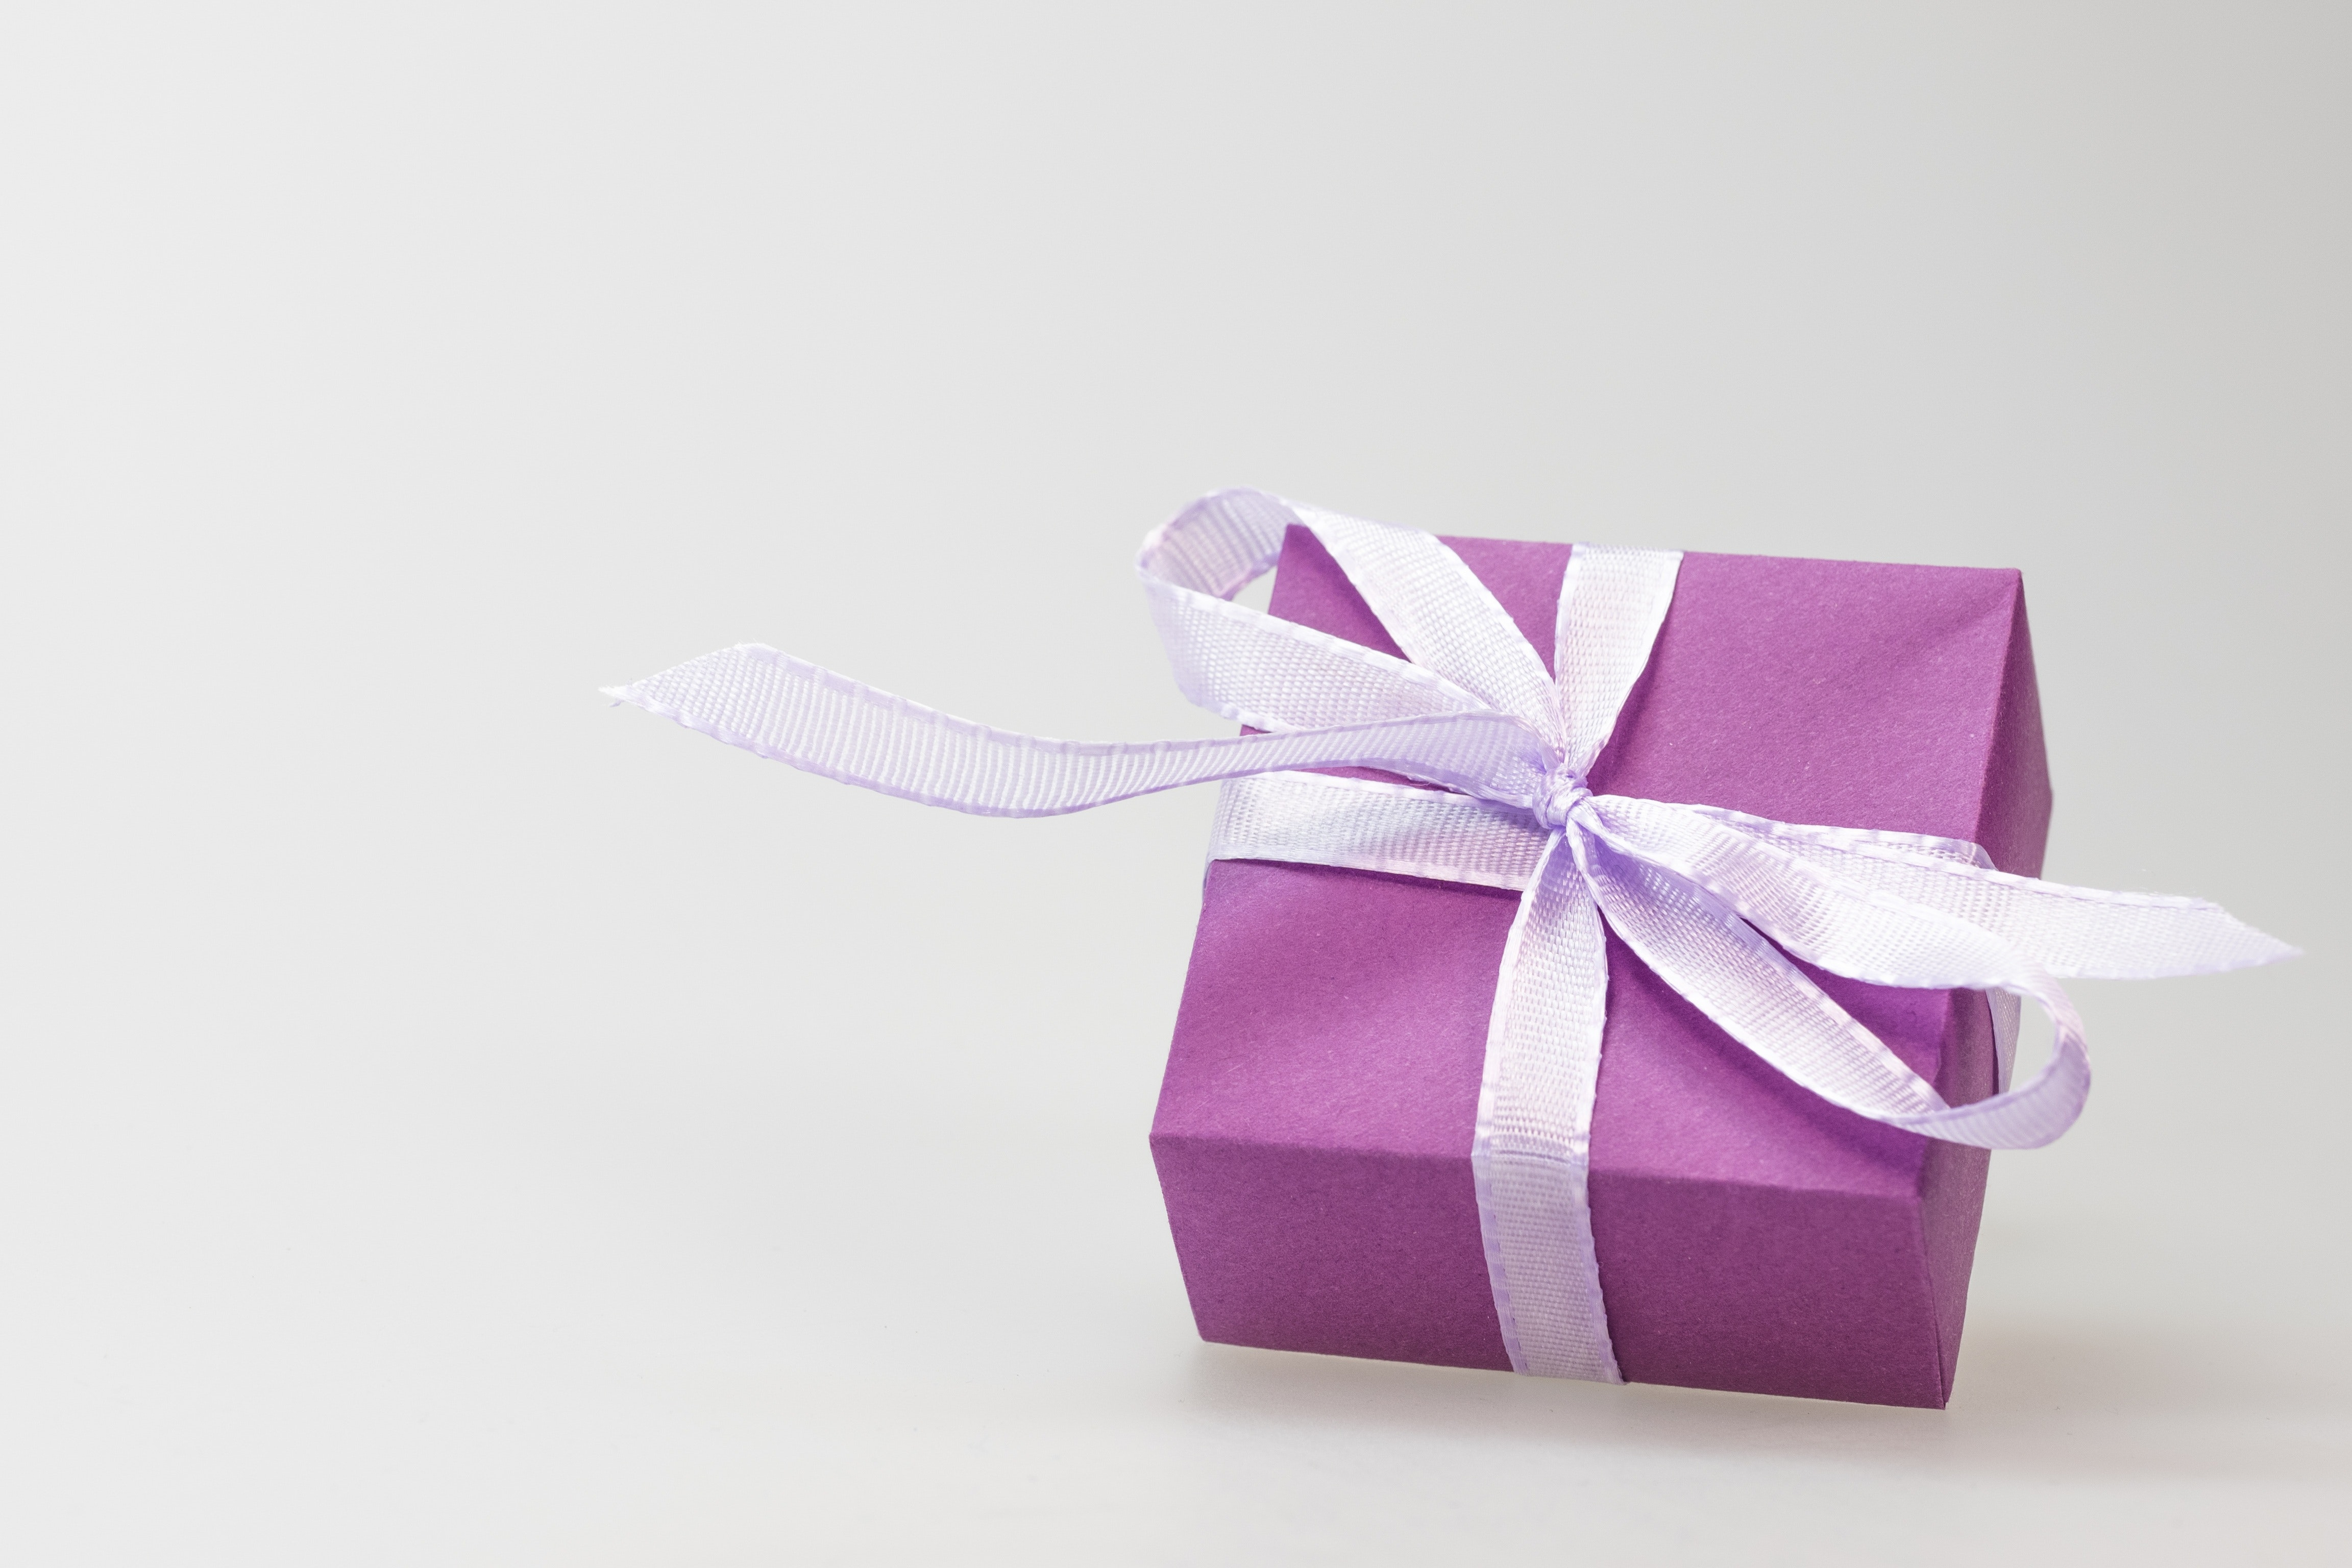 Similar Photos. Teal Gift Box With Ribbon & Purple Gift Box · Free Stock Photo